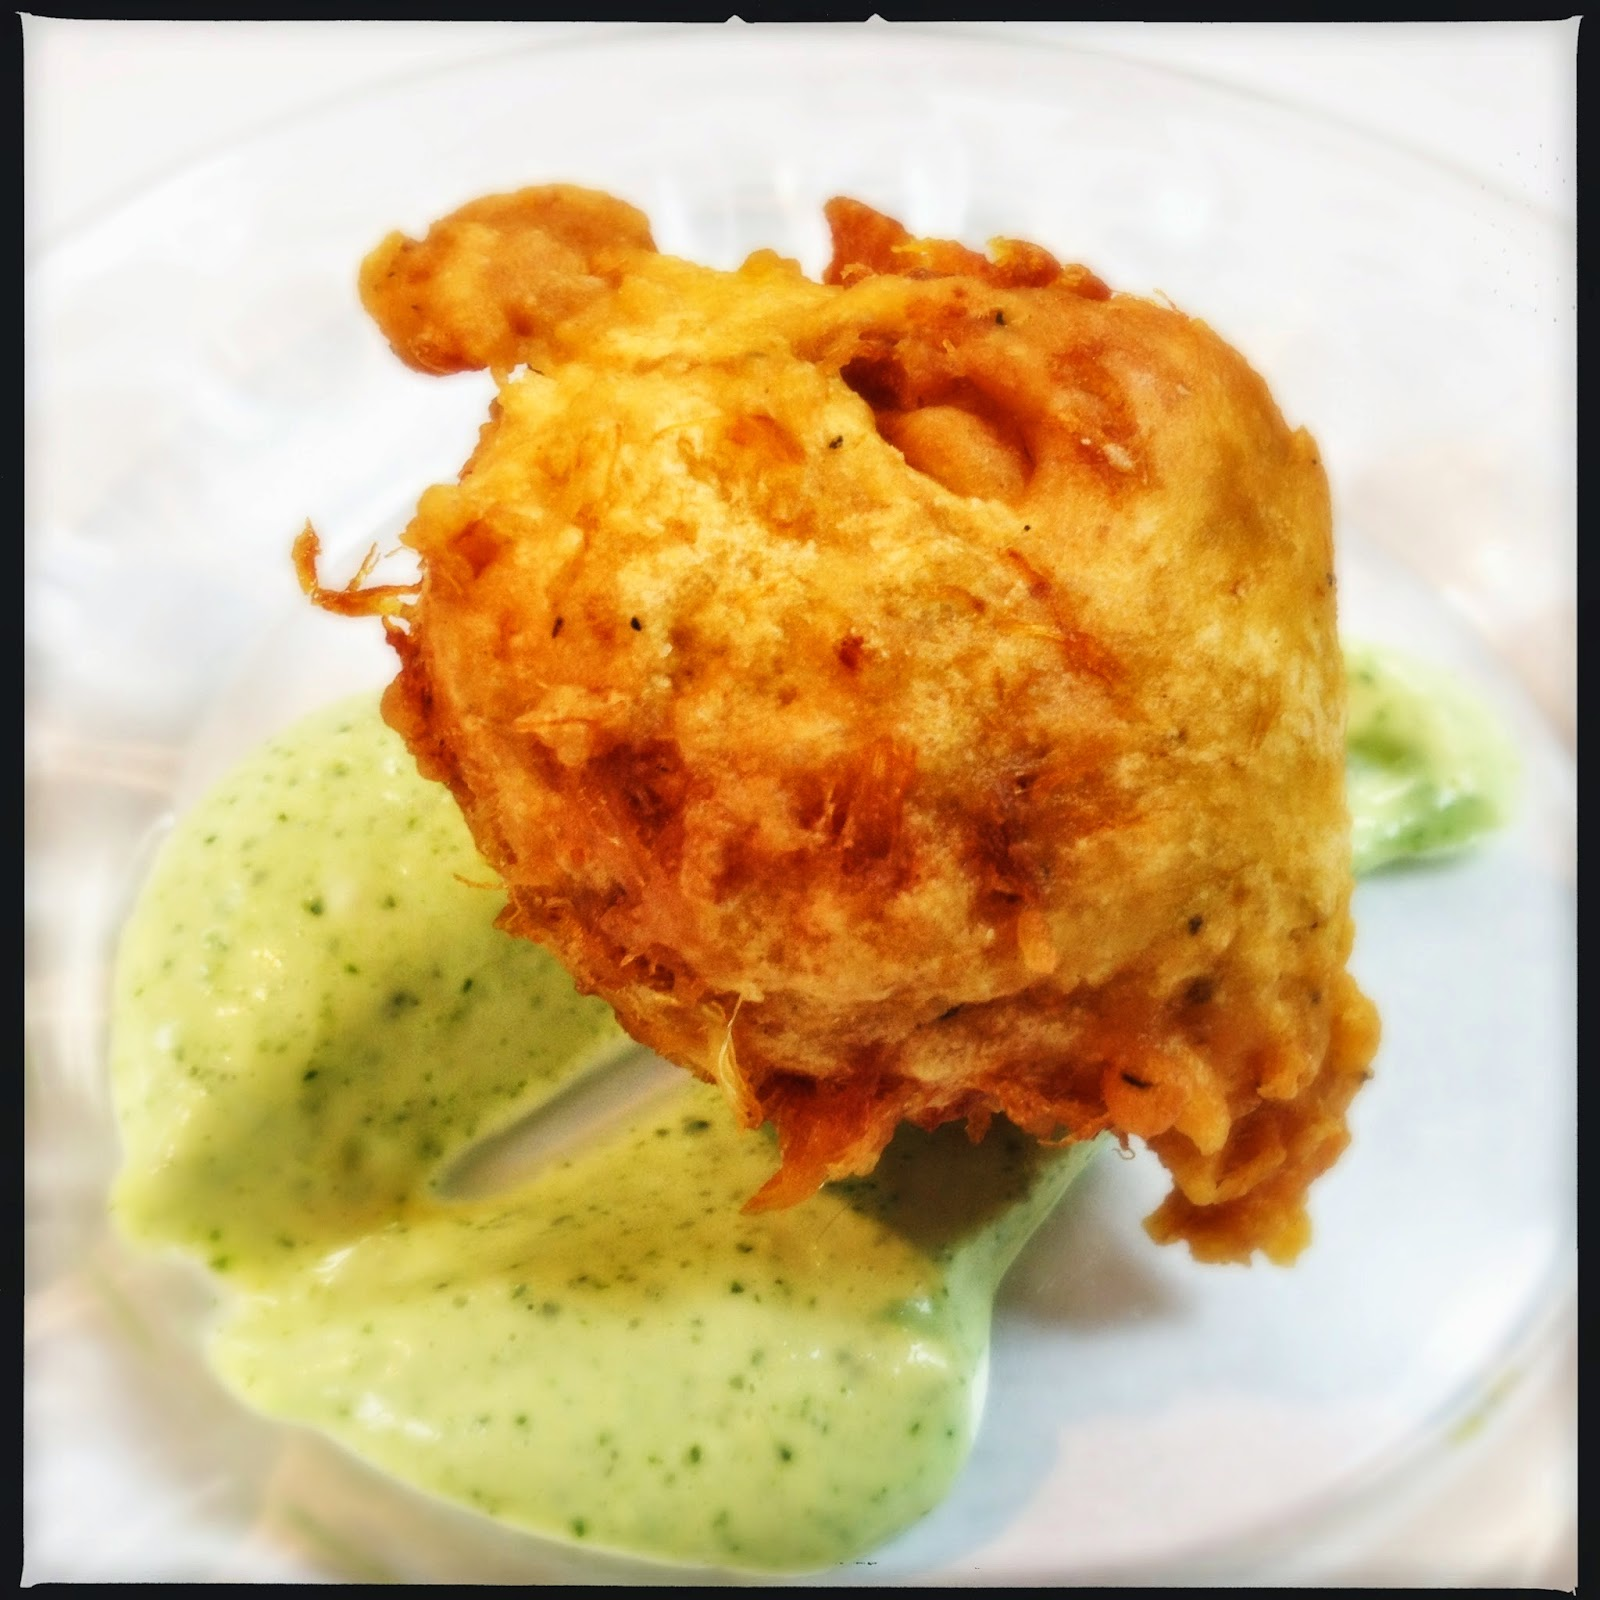 ... MY BARBARIC GULP!: Salt Cod Fritters with Spicy Cilantro Sauce